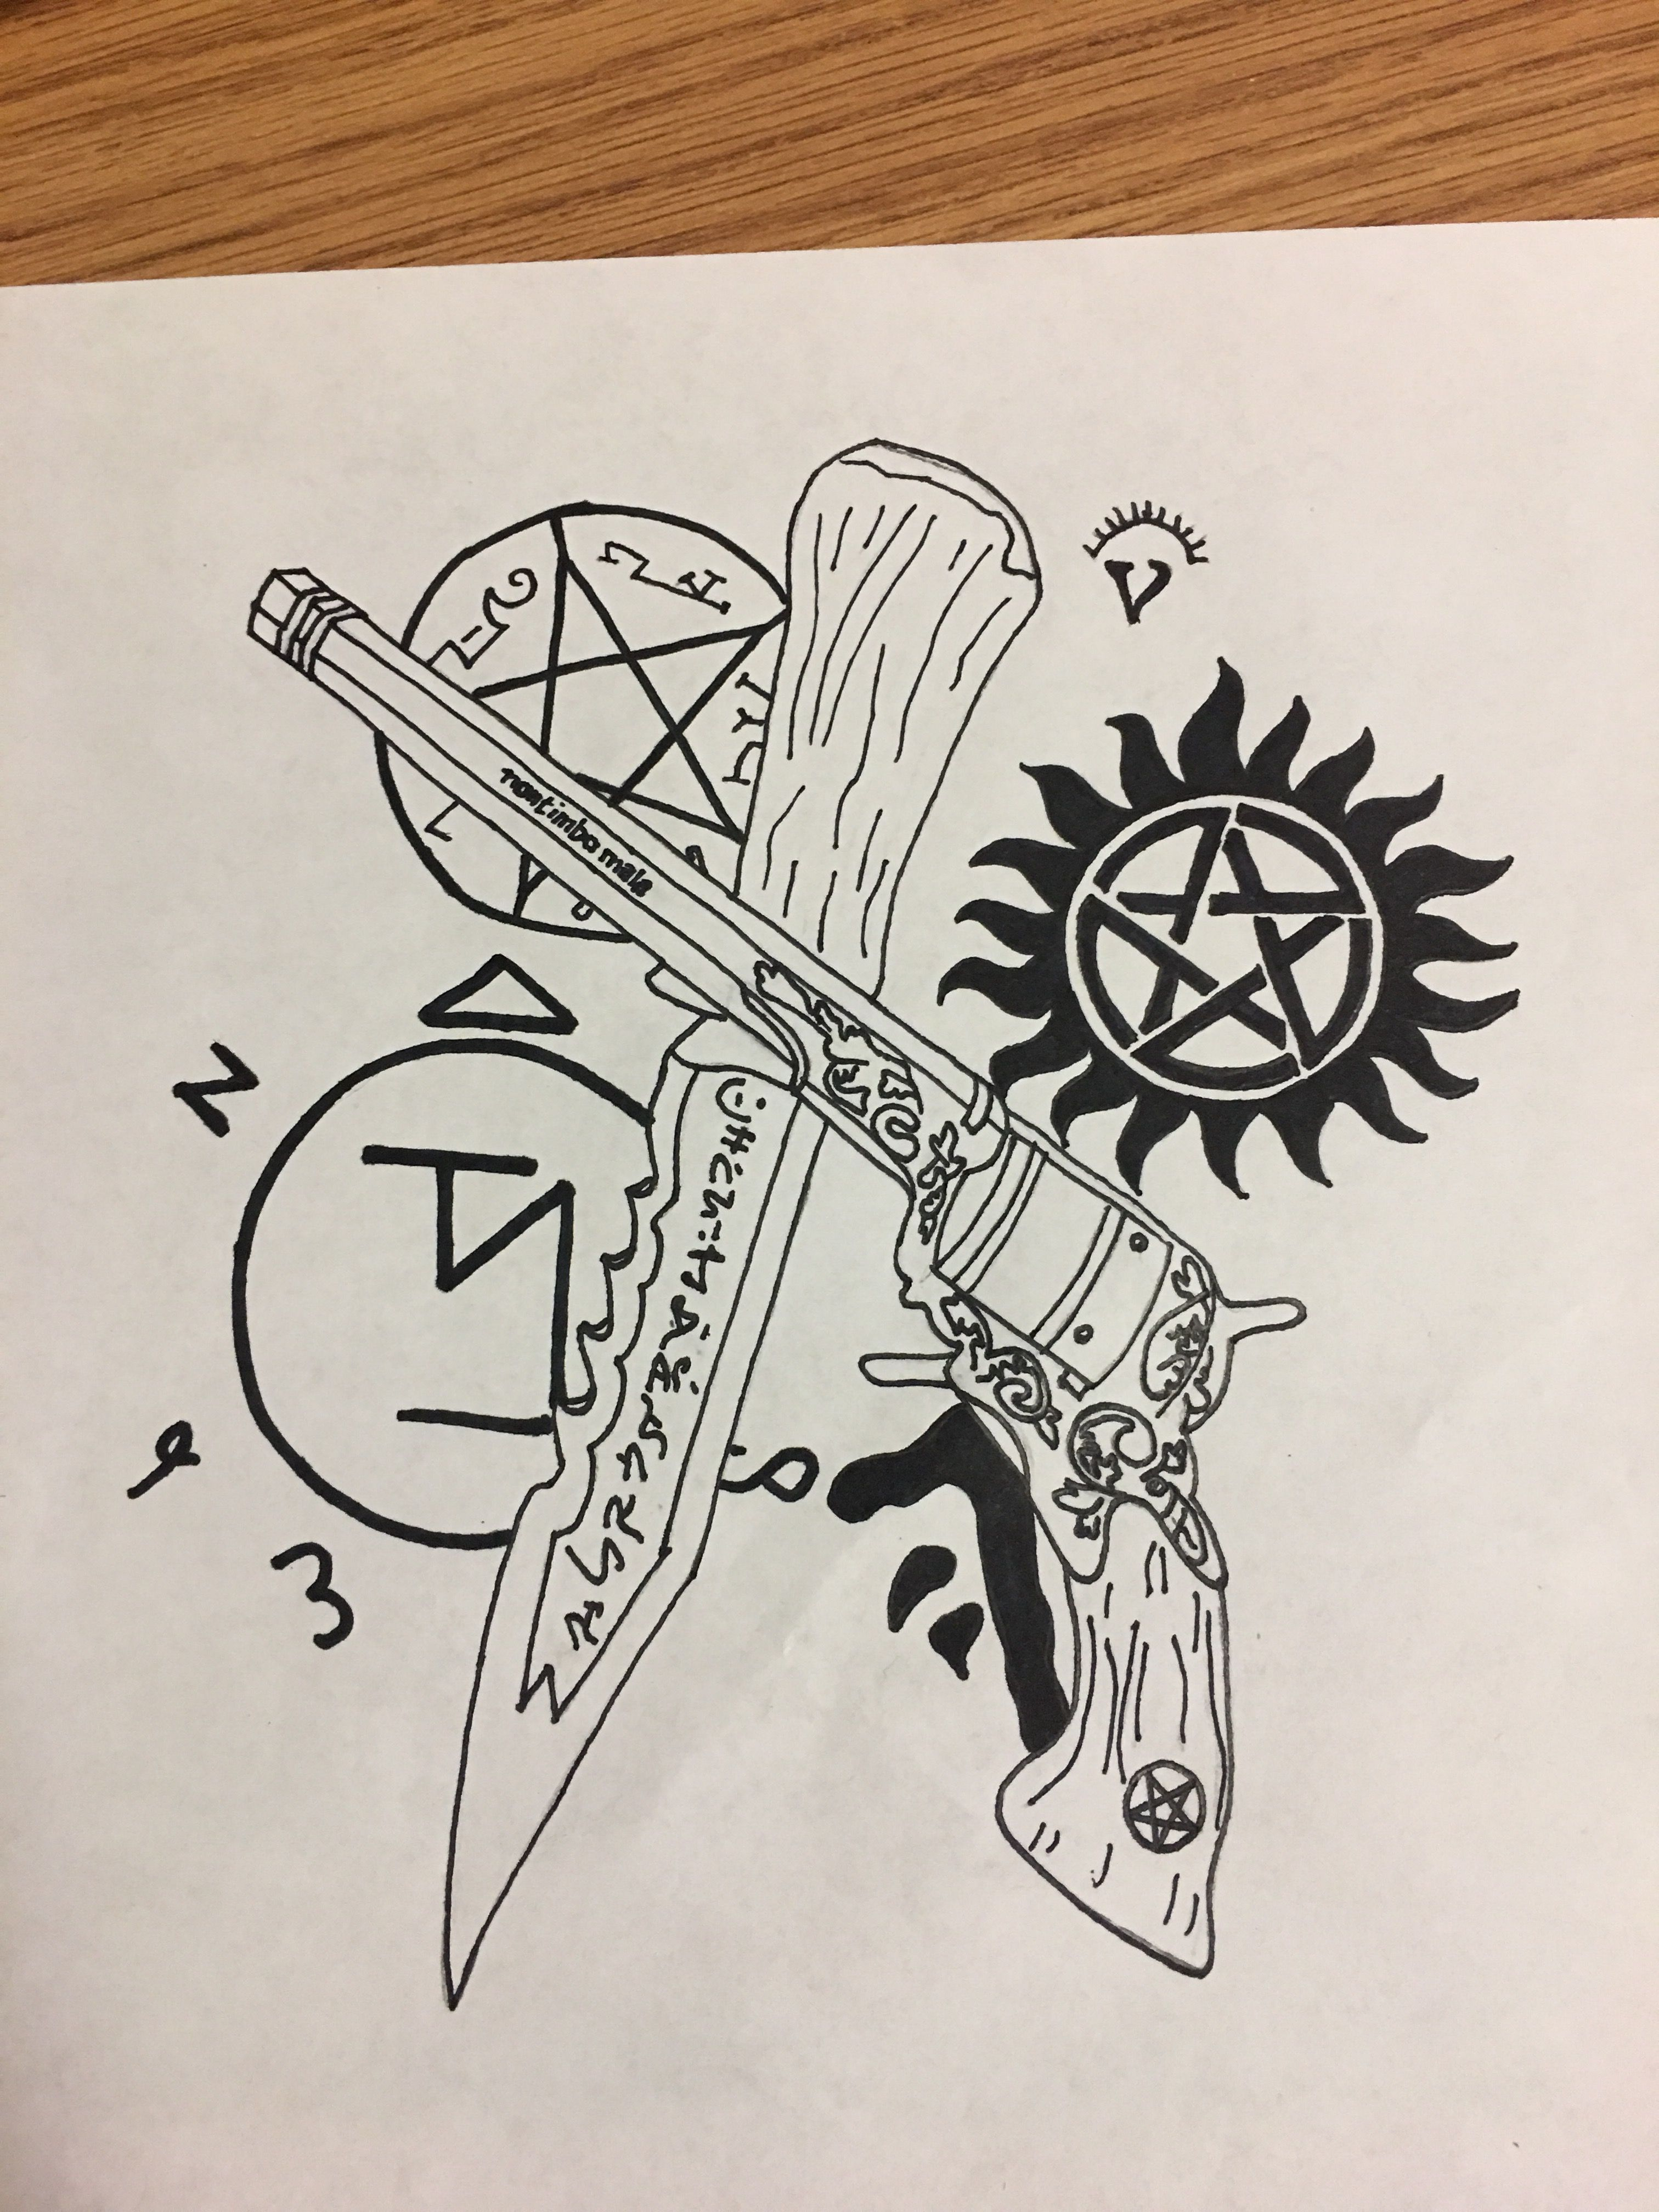 Supernatural tattoo drawing. Supernatural tattoo